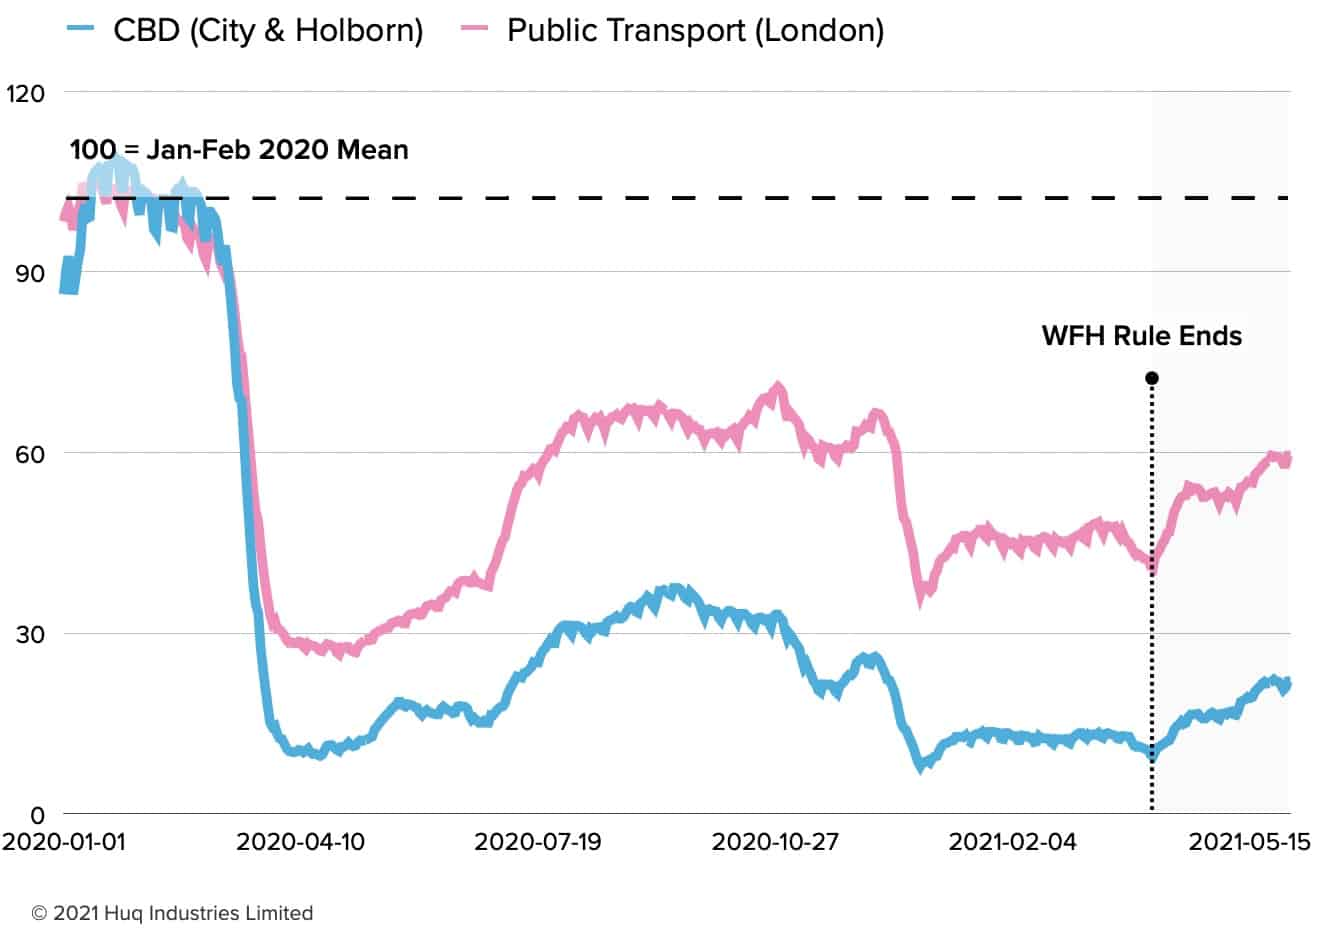 London Public Transport Recovers to 60% but Square Mile at 23%